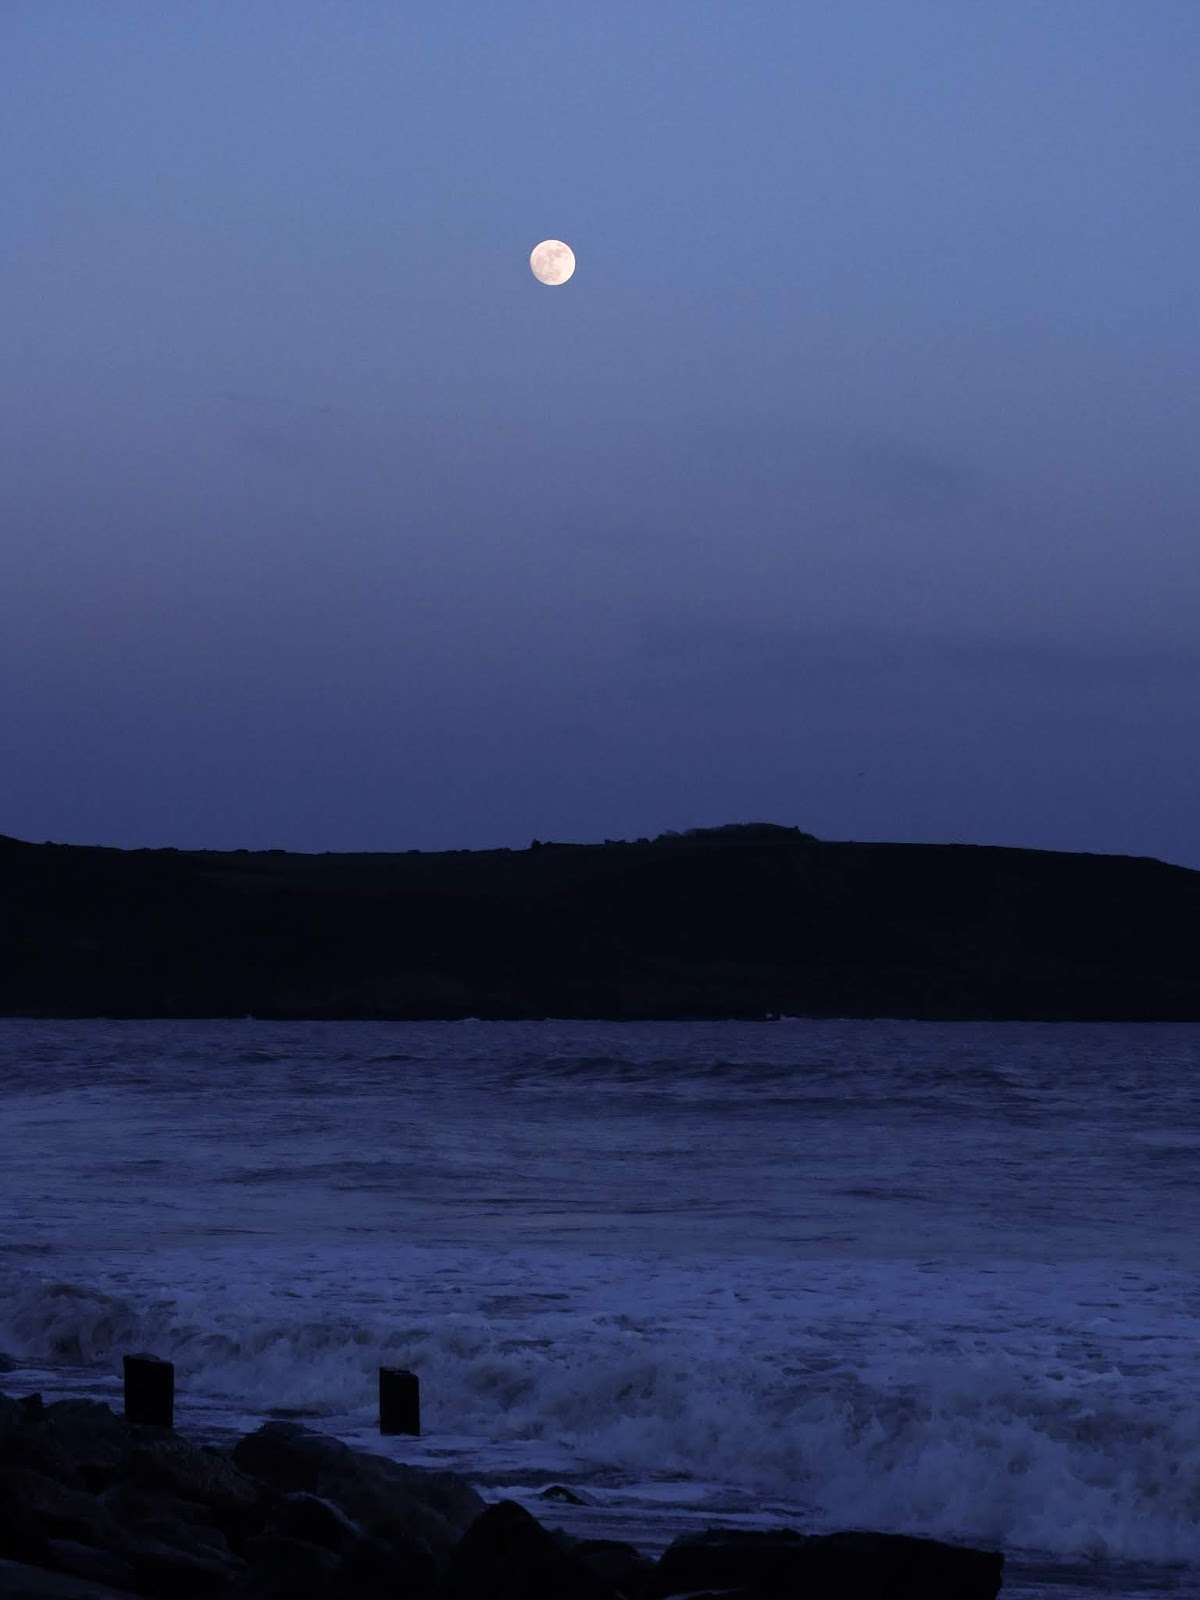 Blue hour moon-scape over the water in Youghal, County Cork.